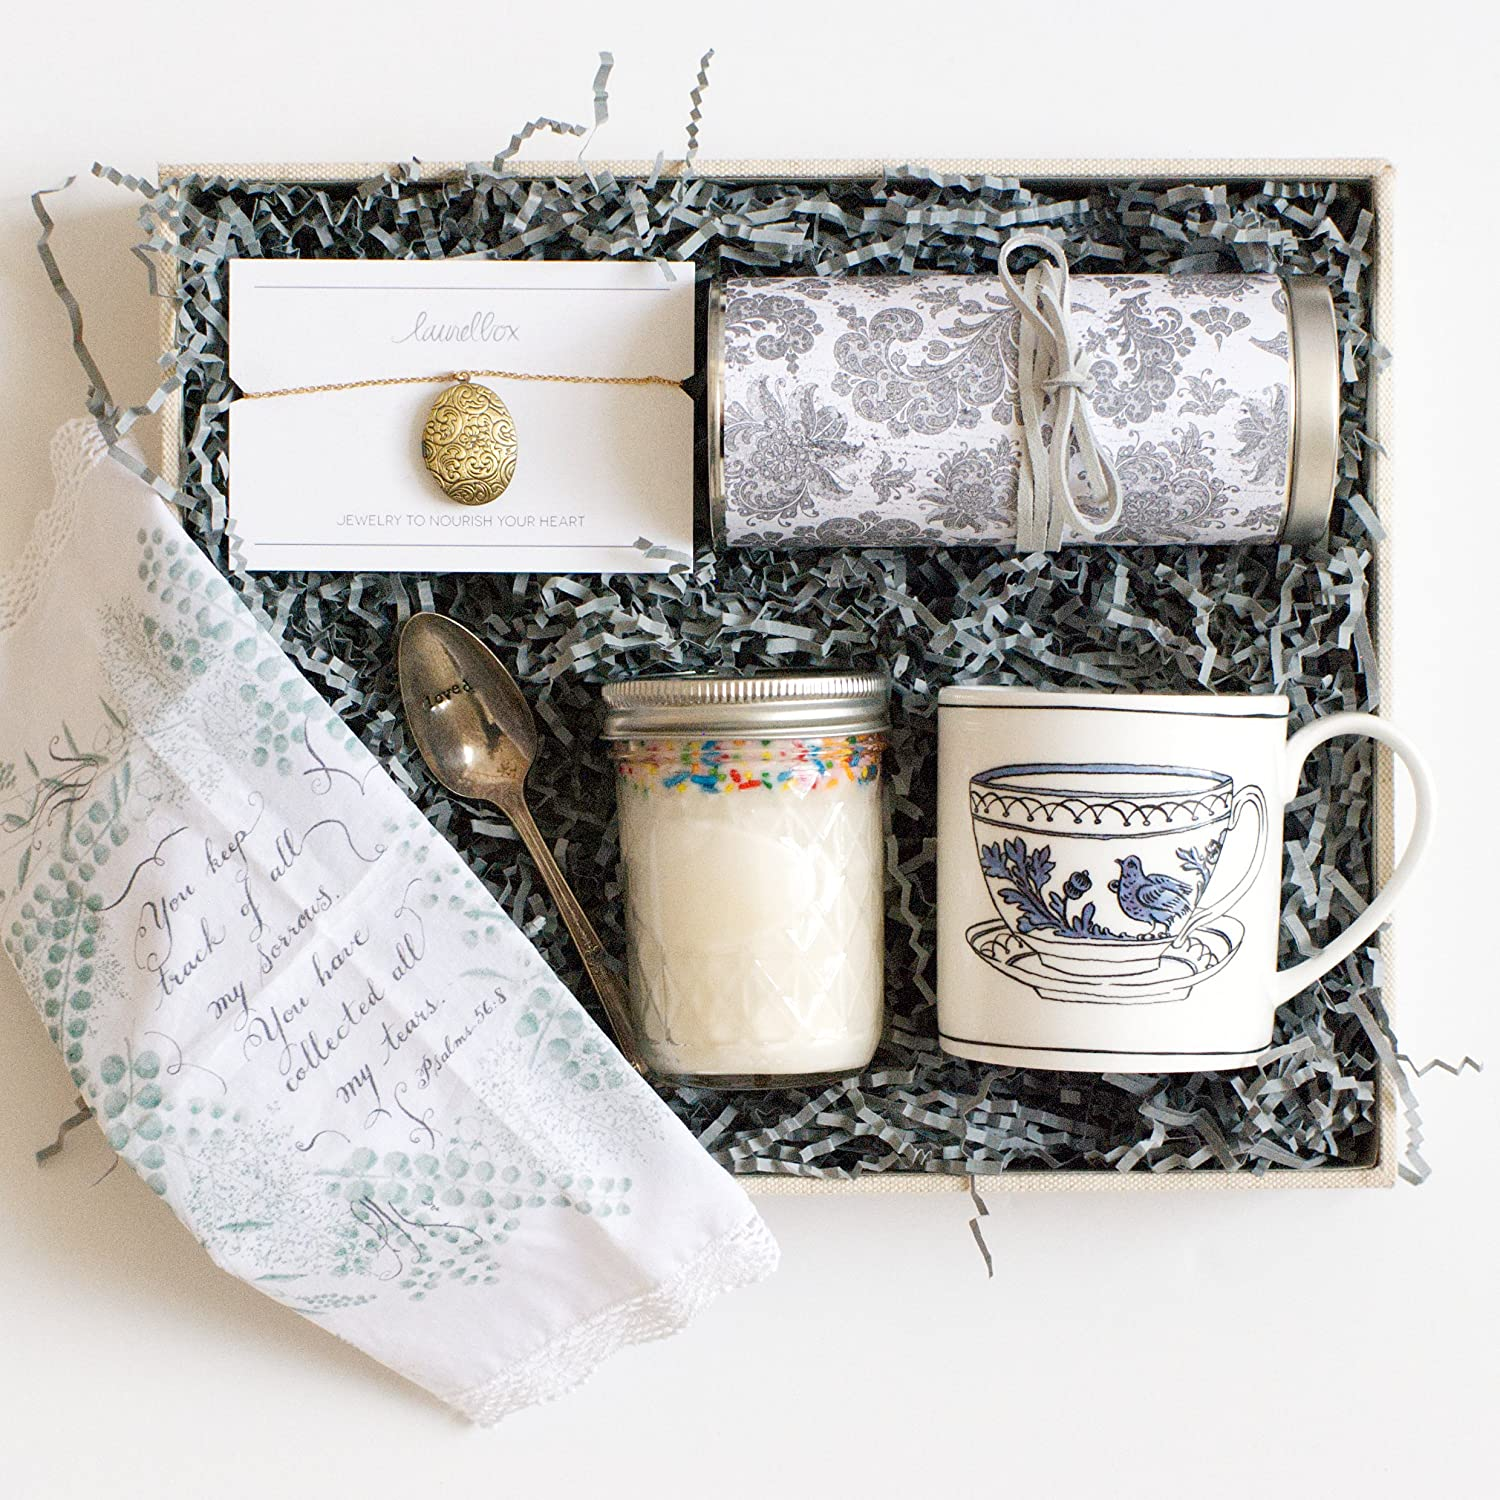 Amazon.com: Sympathy Gift Box for Bereaved Mothers - Journey of Grief Gift Box Set: Home & Kitchen